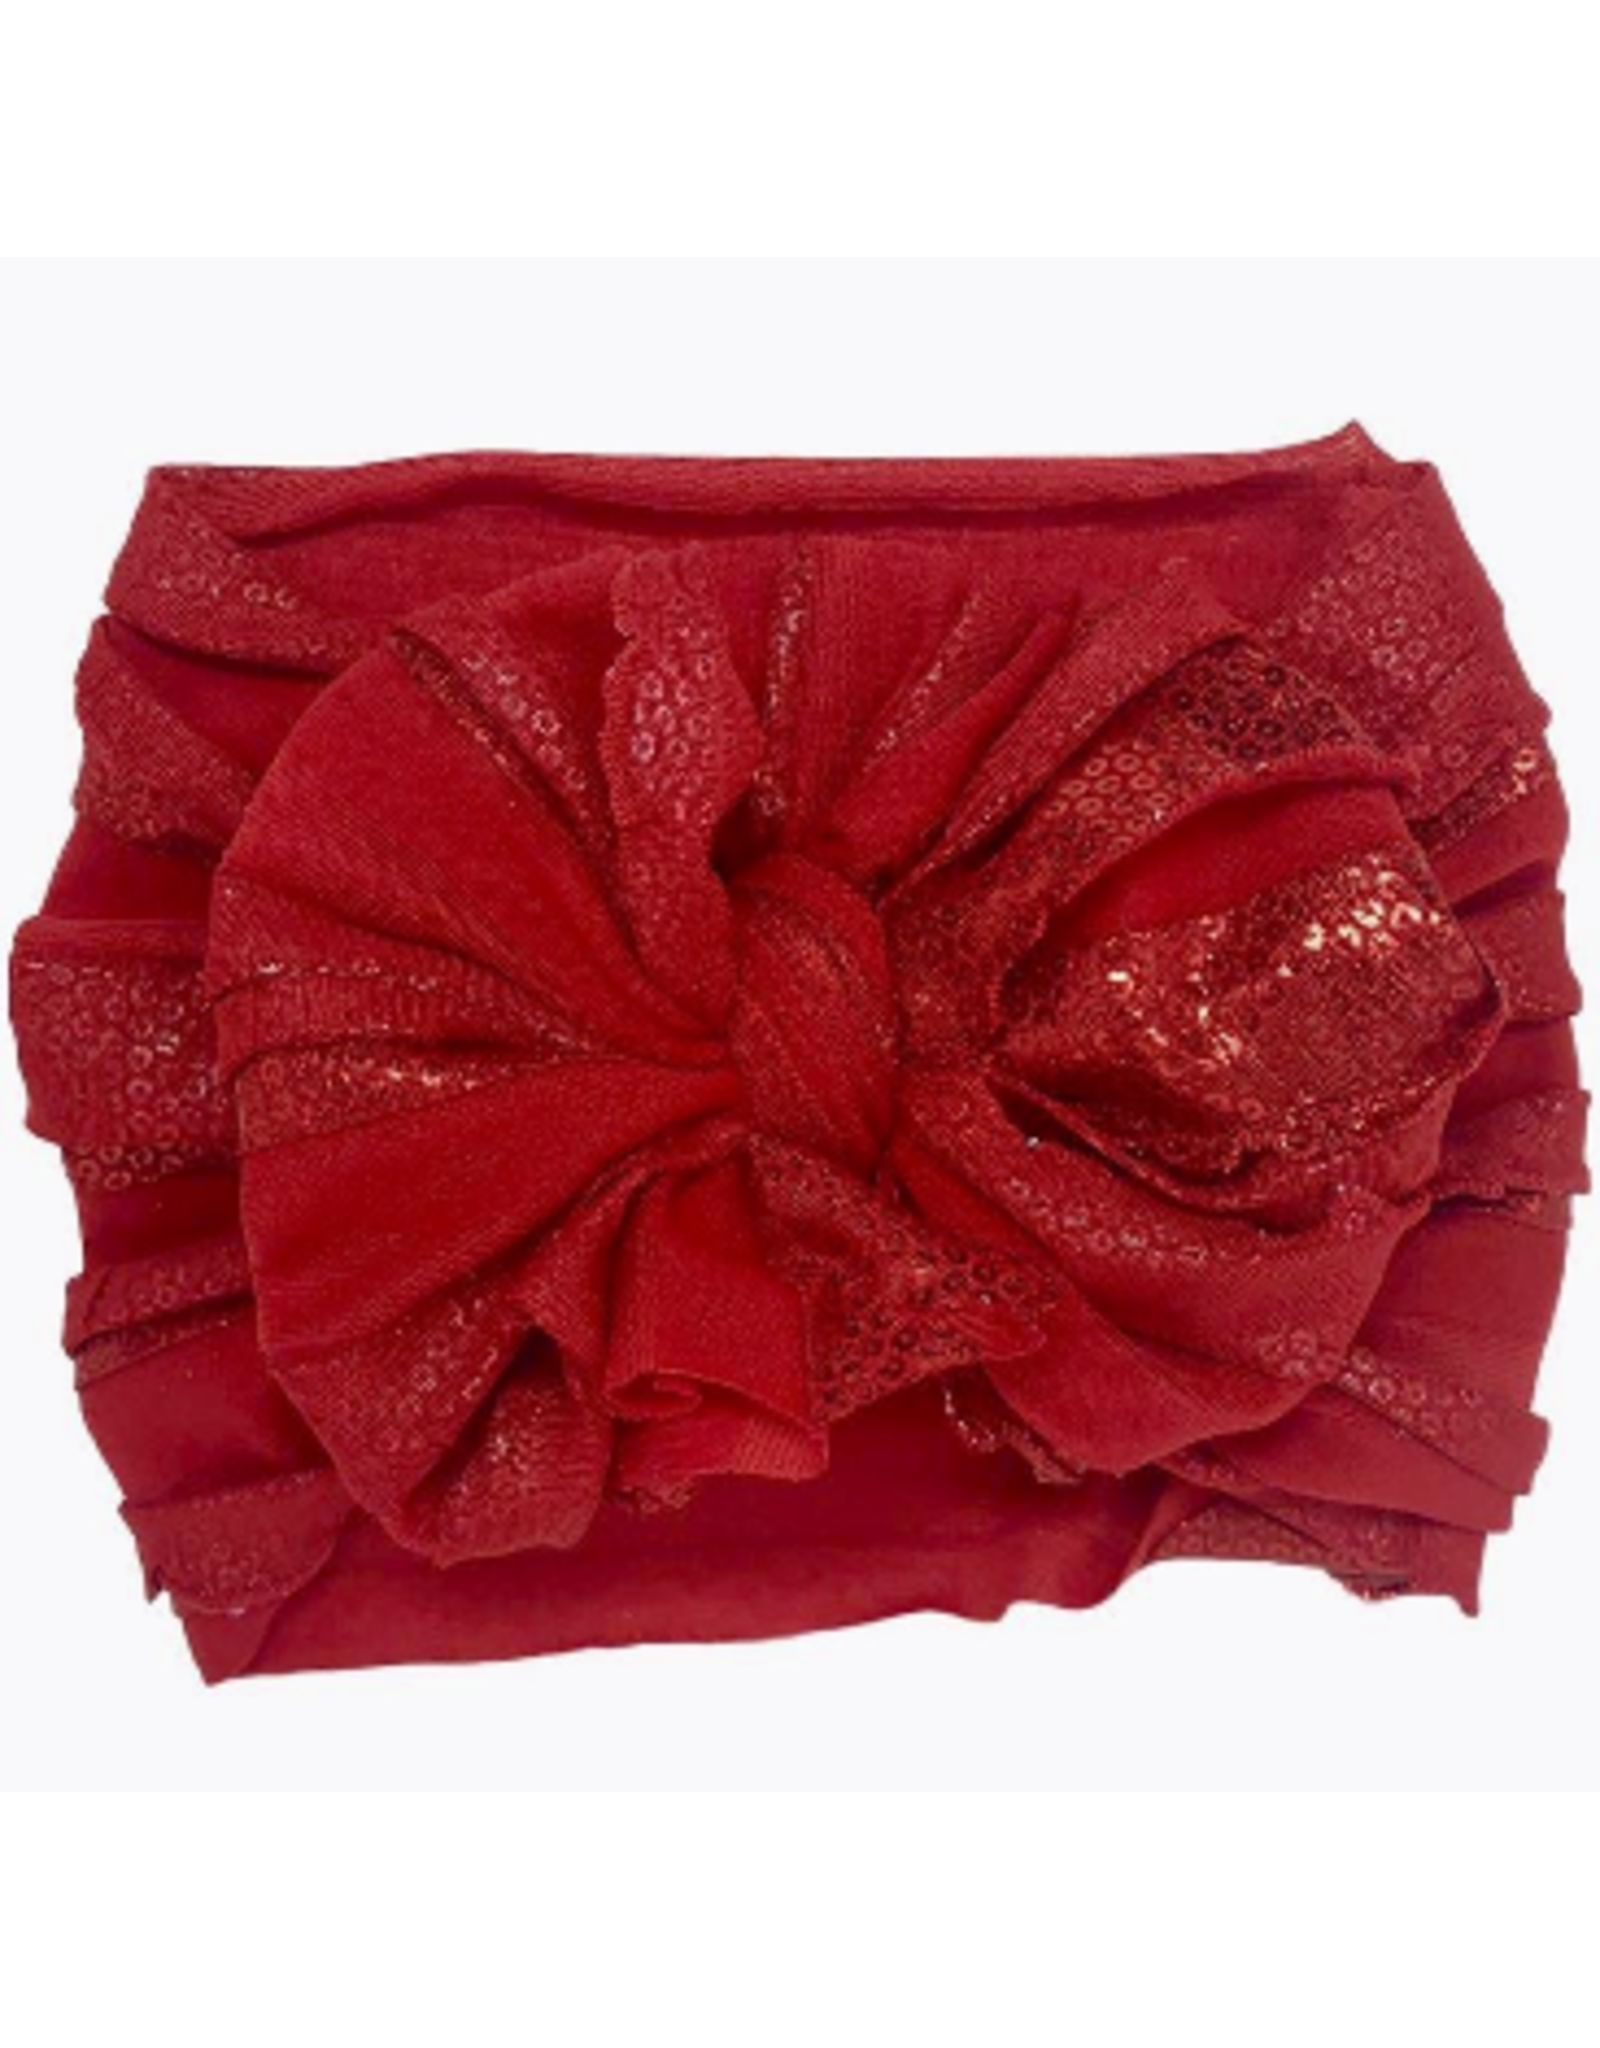 In Awe- Red Foil Sequin Headband